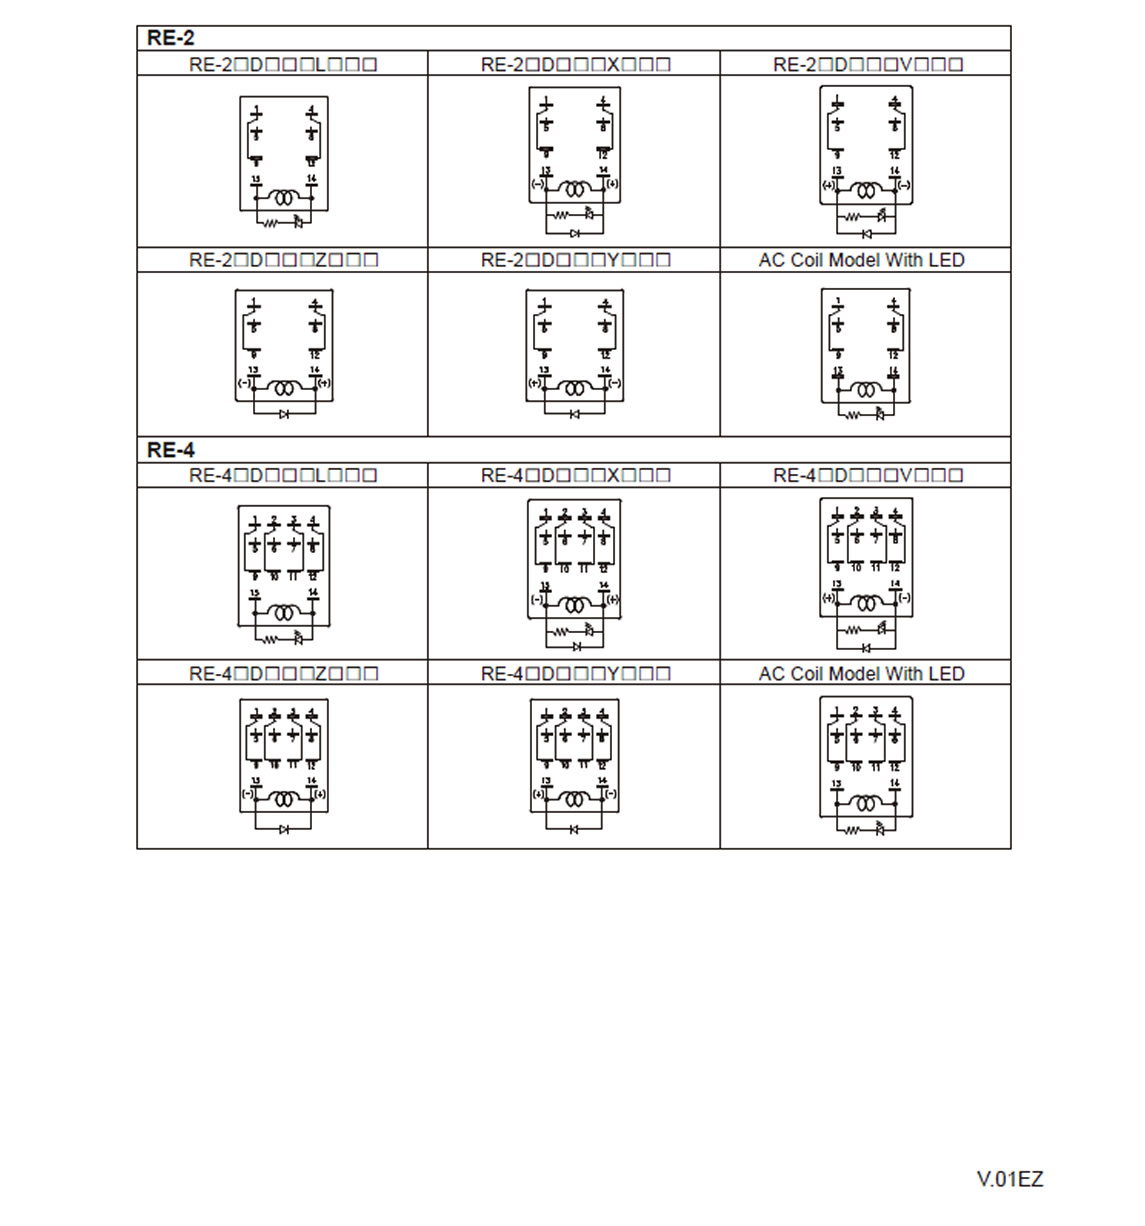 Re Relay Goodsky Manufacturer 4pdt Wiring Diagram Diagrams Wir Tags Dpst 2a 2bdpdt 2c4pdt 4c5adc 6vdc 12vdc 24vdc 48vdc 60vdc 110vdc 120vdc 220vdc 240vac 230vre